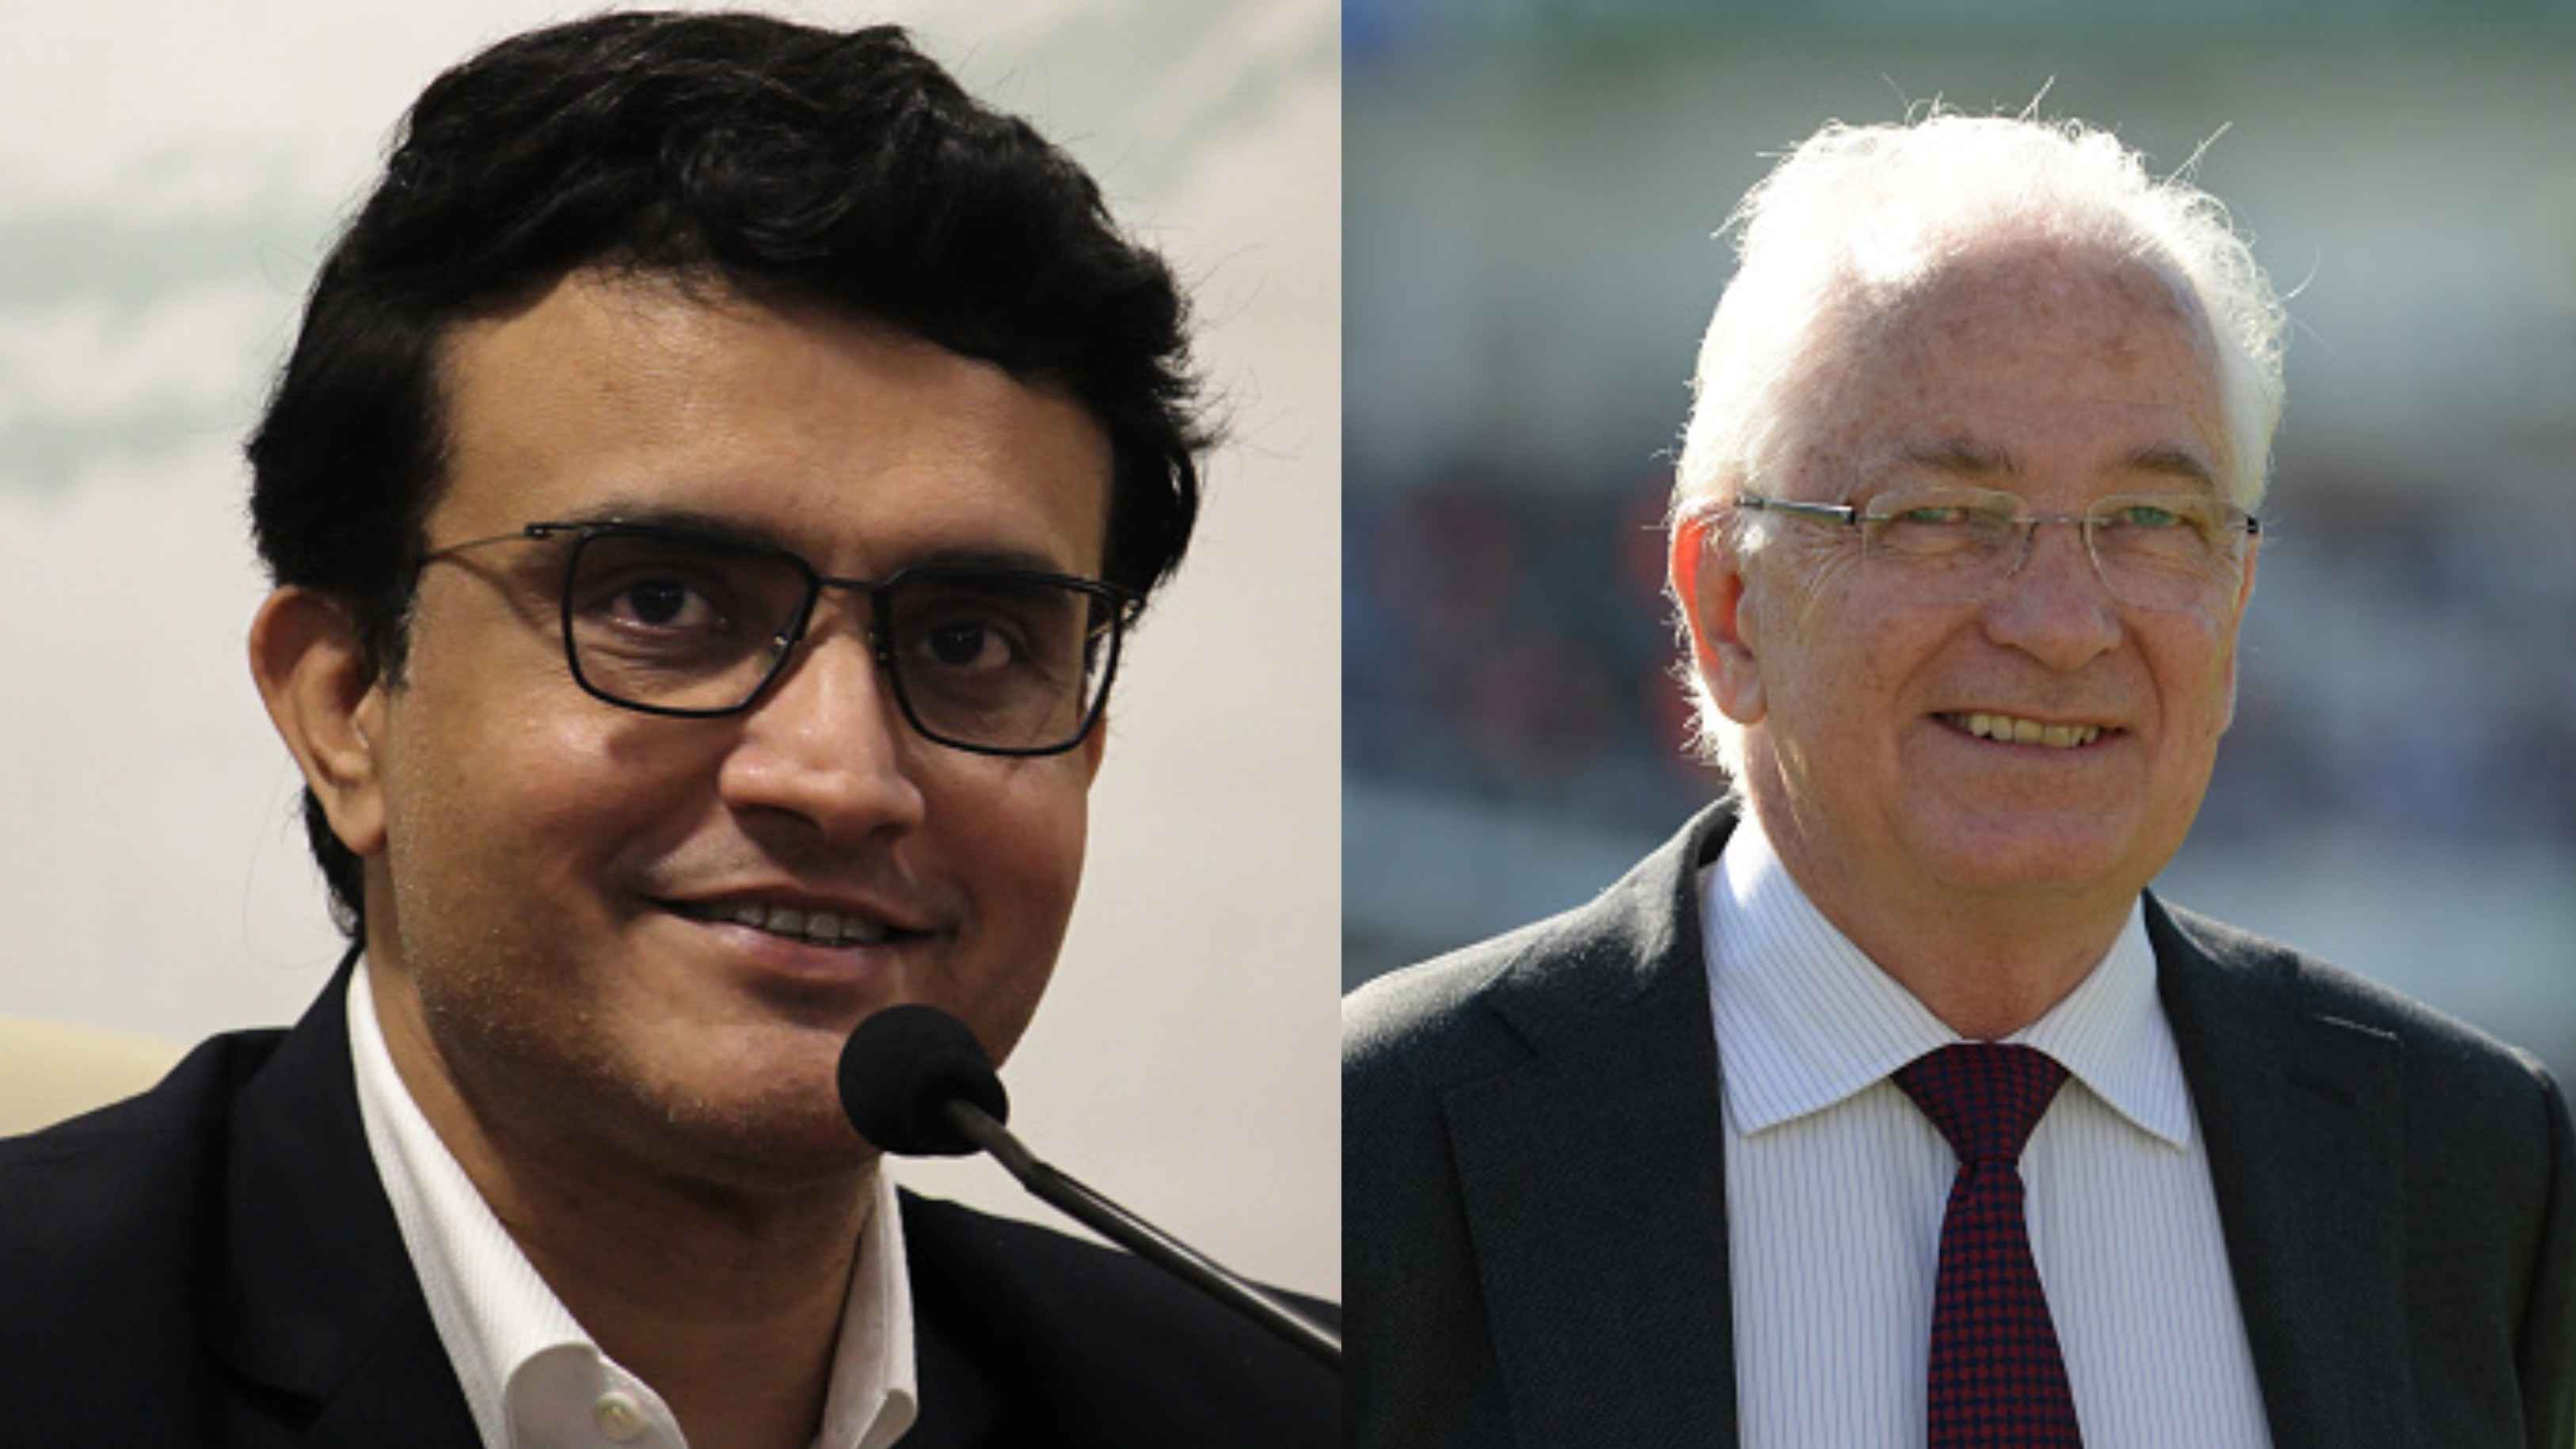 Sourav Ganguly has all qualities and political skills to lead ICC, says David Gower